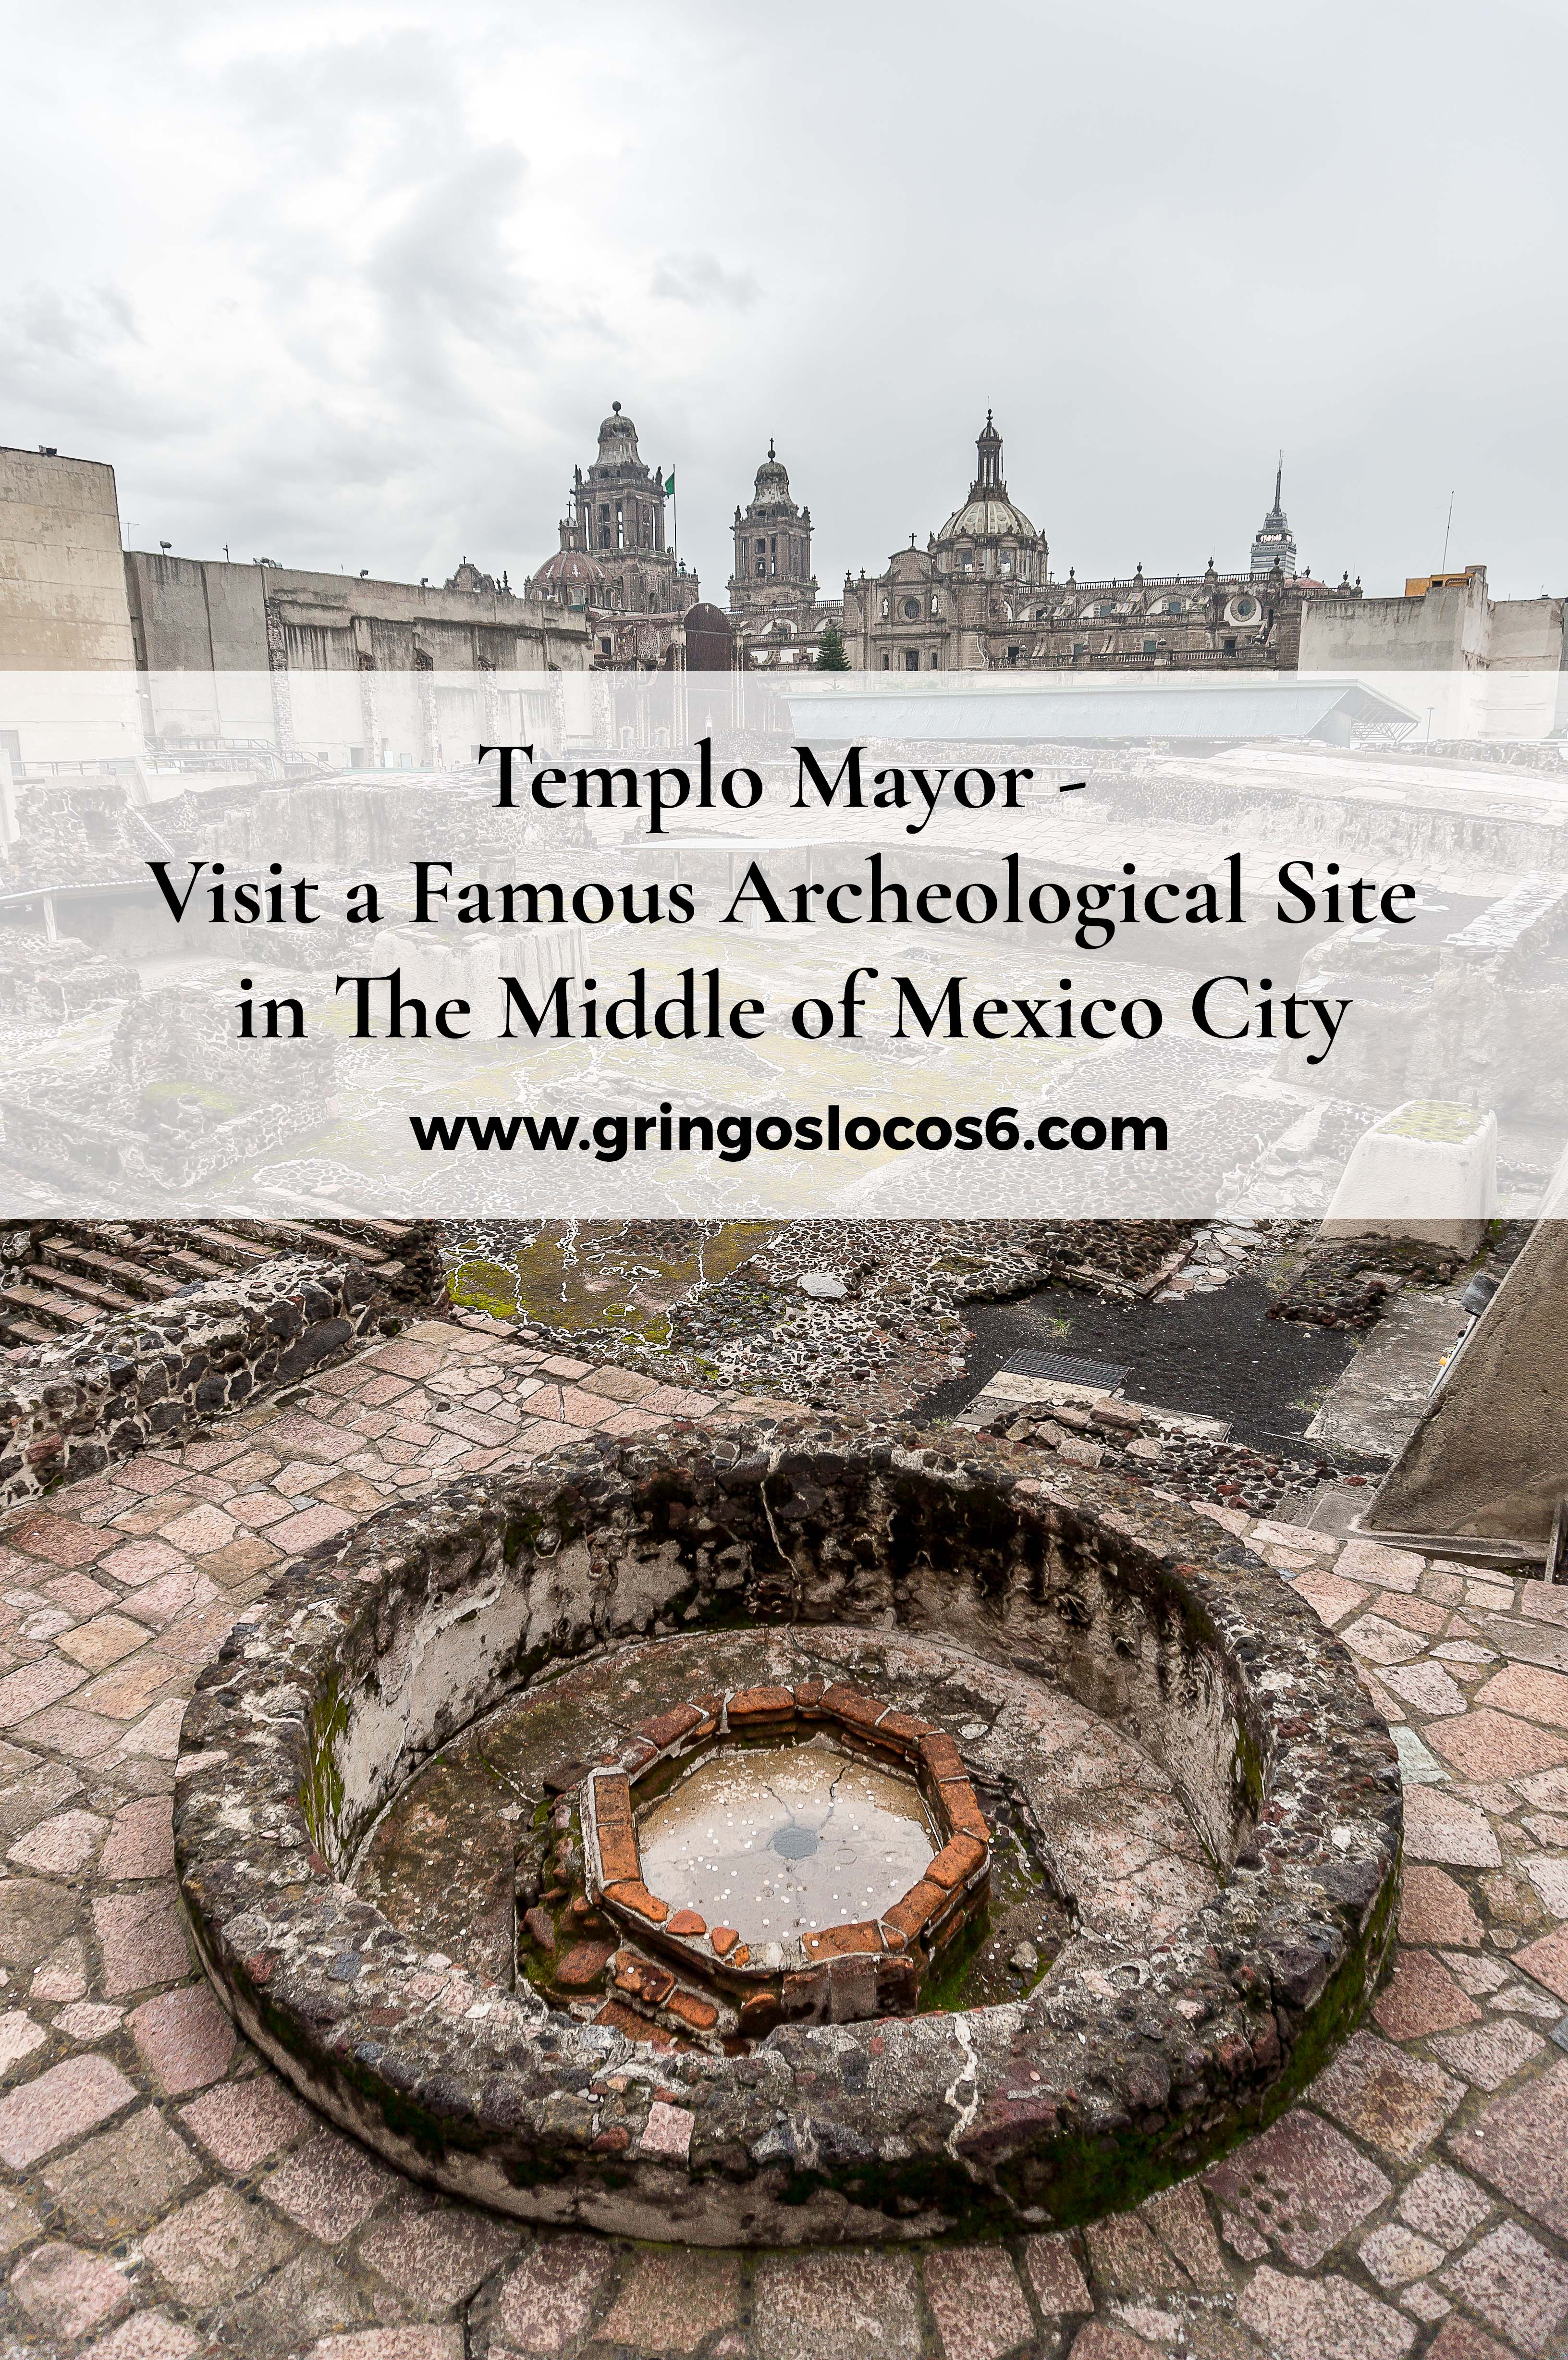 Underneath modern-day Mexico City lies an ancient civilization in the form of amazing archeological sites like Templo Mayor. Be sure to visit!